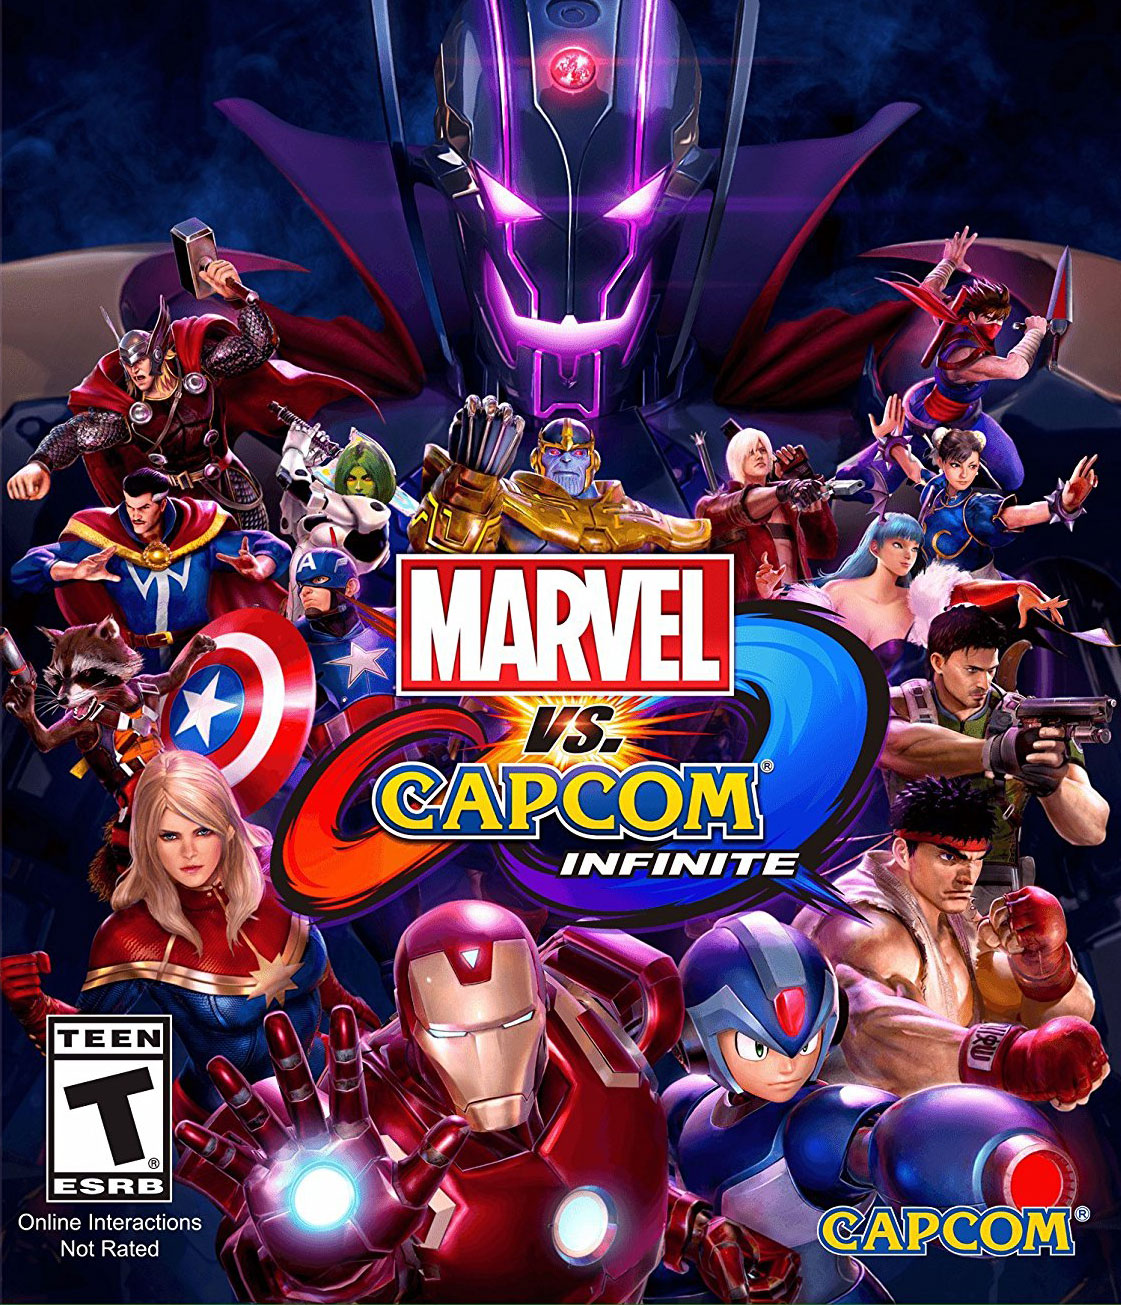 https://img5.downloadha.com/hosein/Game/September%202017/19/Marvel-vs-Capcom-Infinite-pc-cover-large.jpg